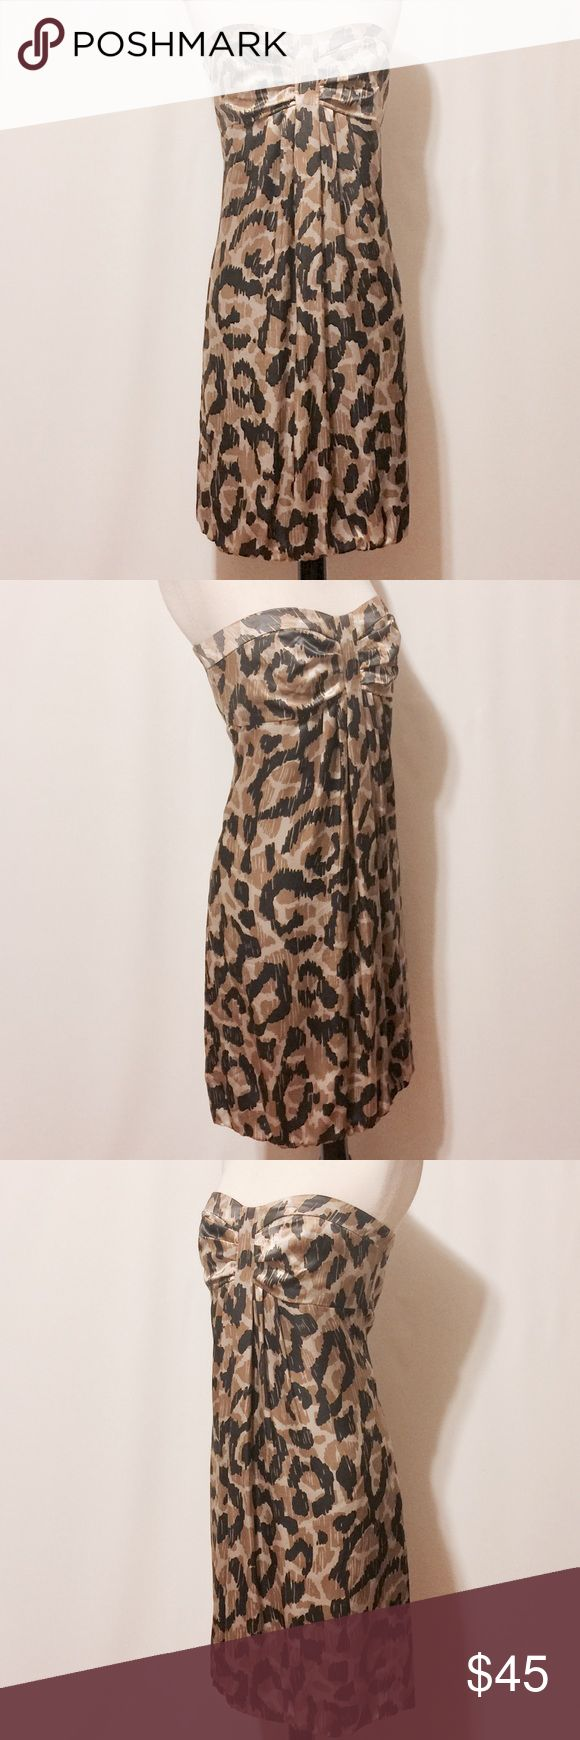 """💫 Donna Ricco Silk Strapless Animal Print Dress Strapless beauty! Tan, cream, gold and charcoal animal print. Pleated framed bodice, bonded and interior elastic to stay in place. Fully lined, center back invisible zipper closure. 100% Silk 100% Polyester lining Dry Clean Only 36"""" Bust 34"""" Waist 41"""" Hips 46"""" Sweep 30""""Overall length Donna Ricco Dresses Strapless"""